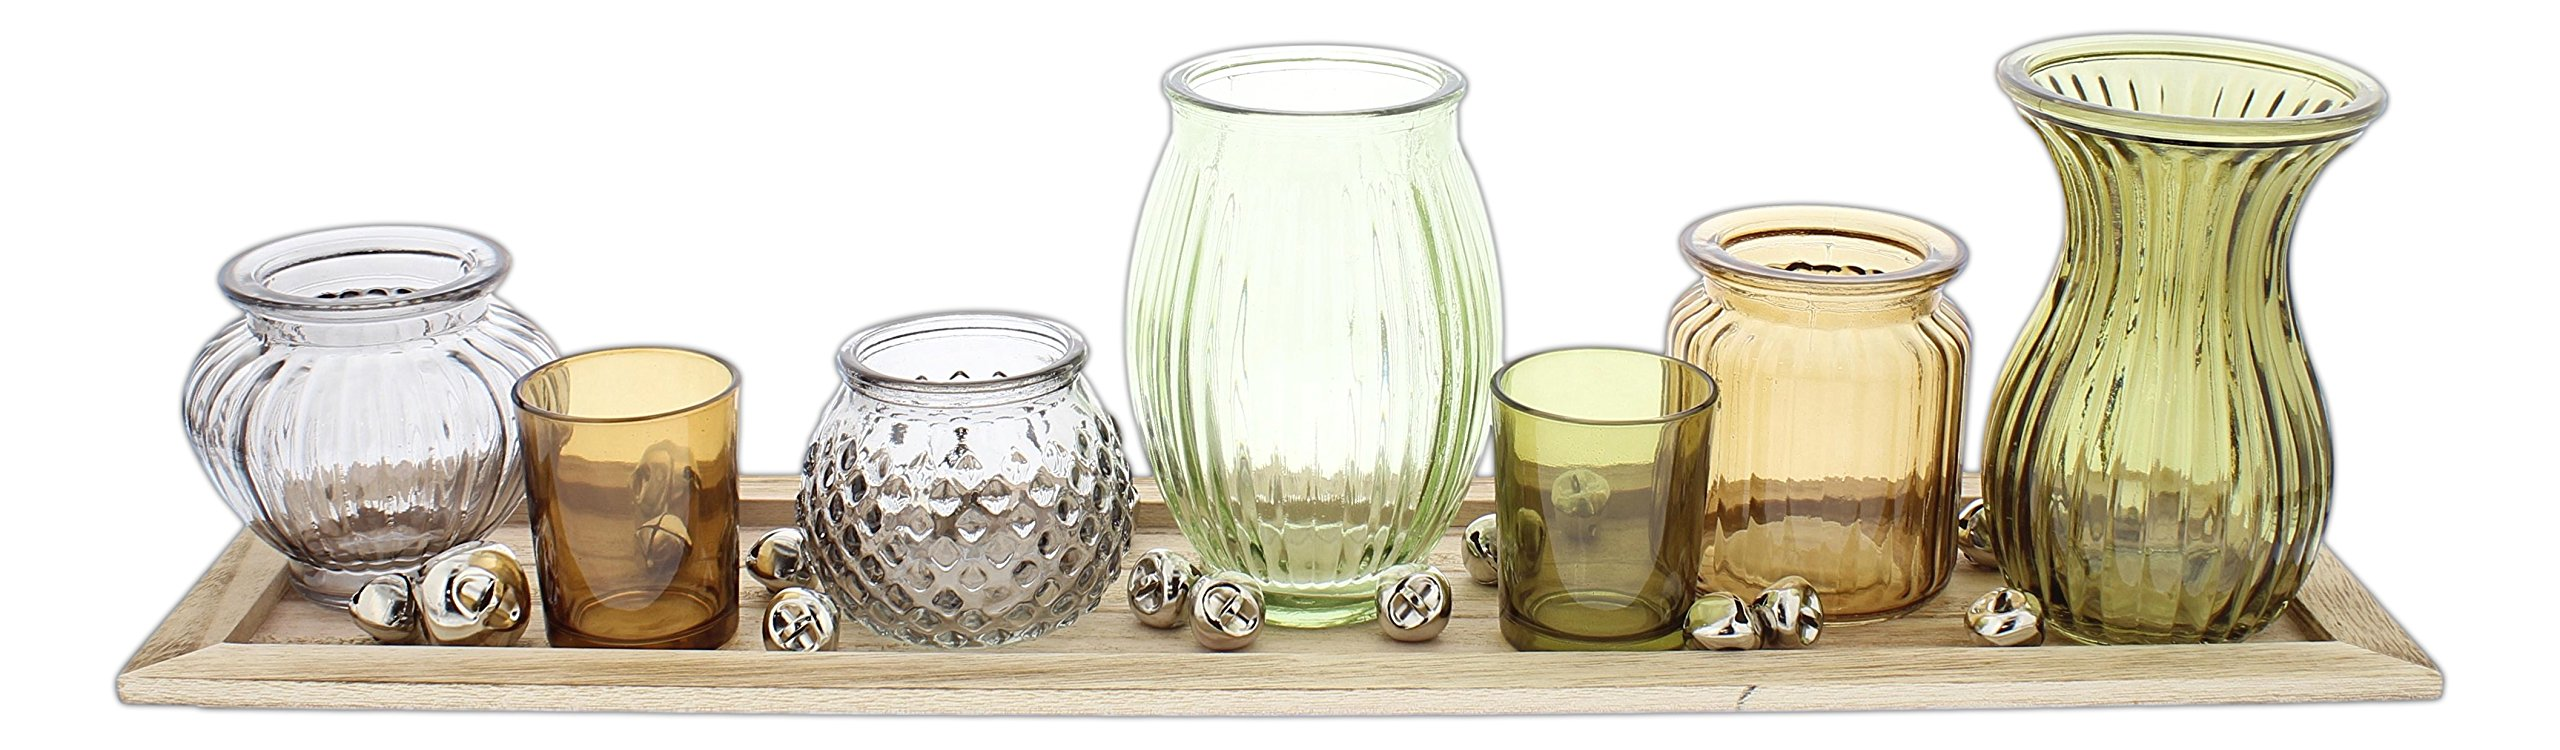 Sullivans Set of 7 Assorted Glass Candle Holder Vases with Wood Tray (Multicolor with Silver Bells)